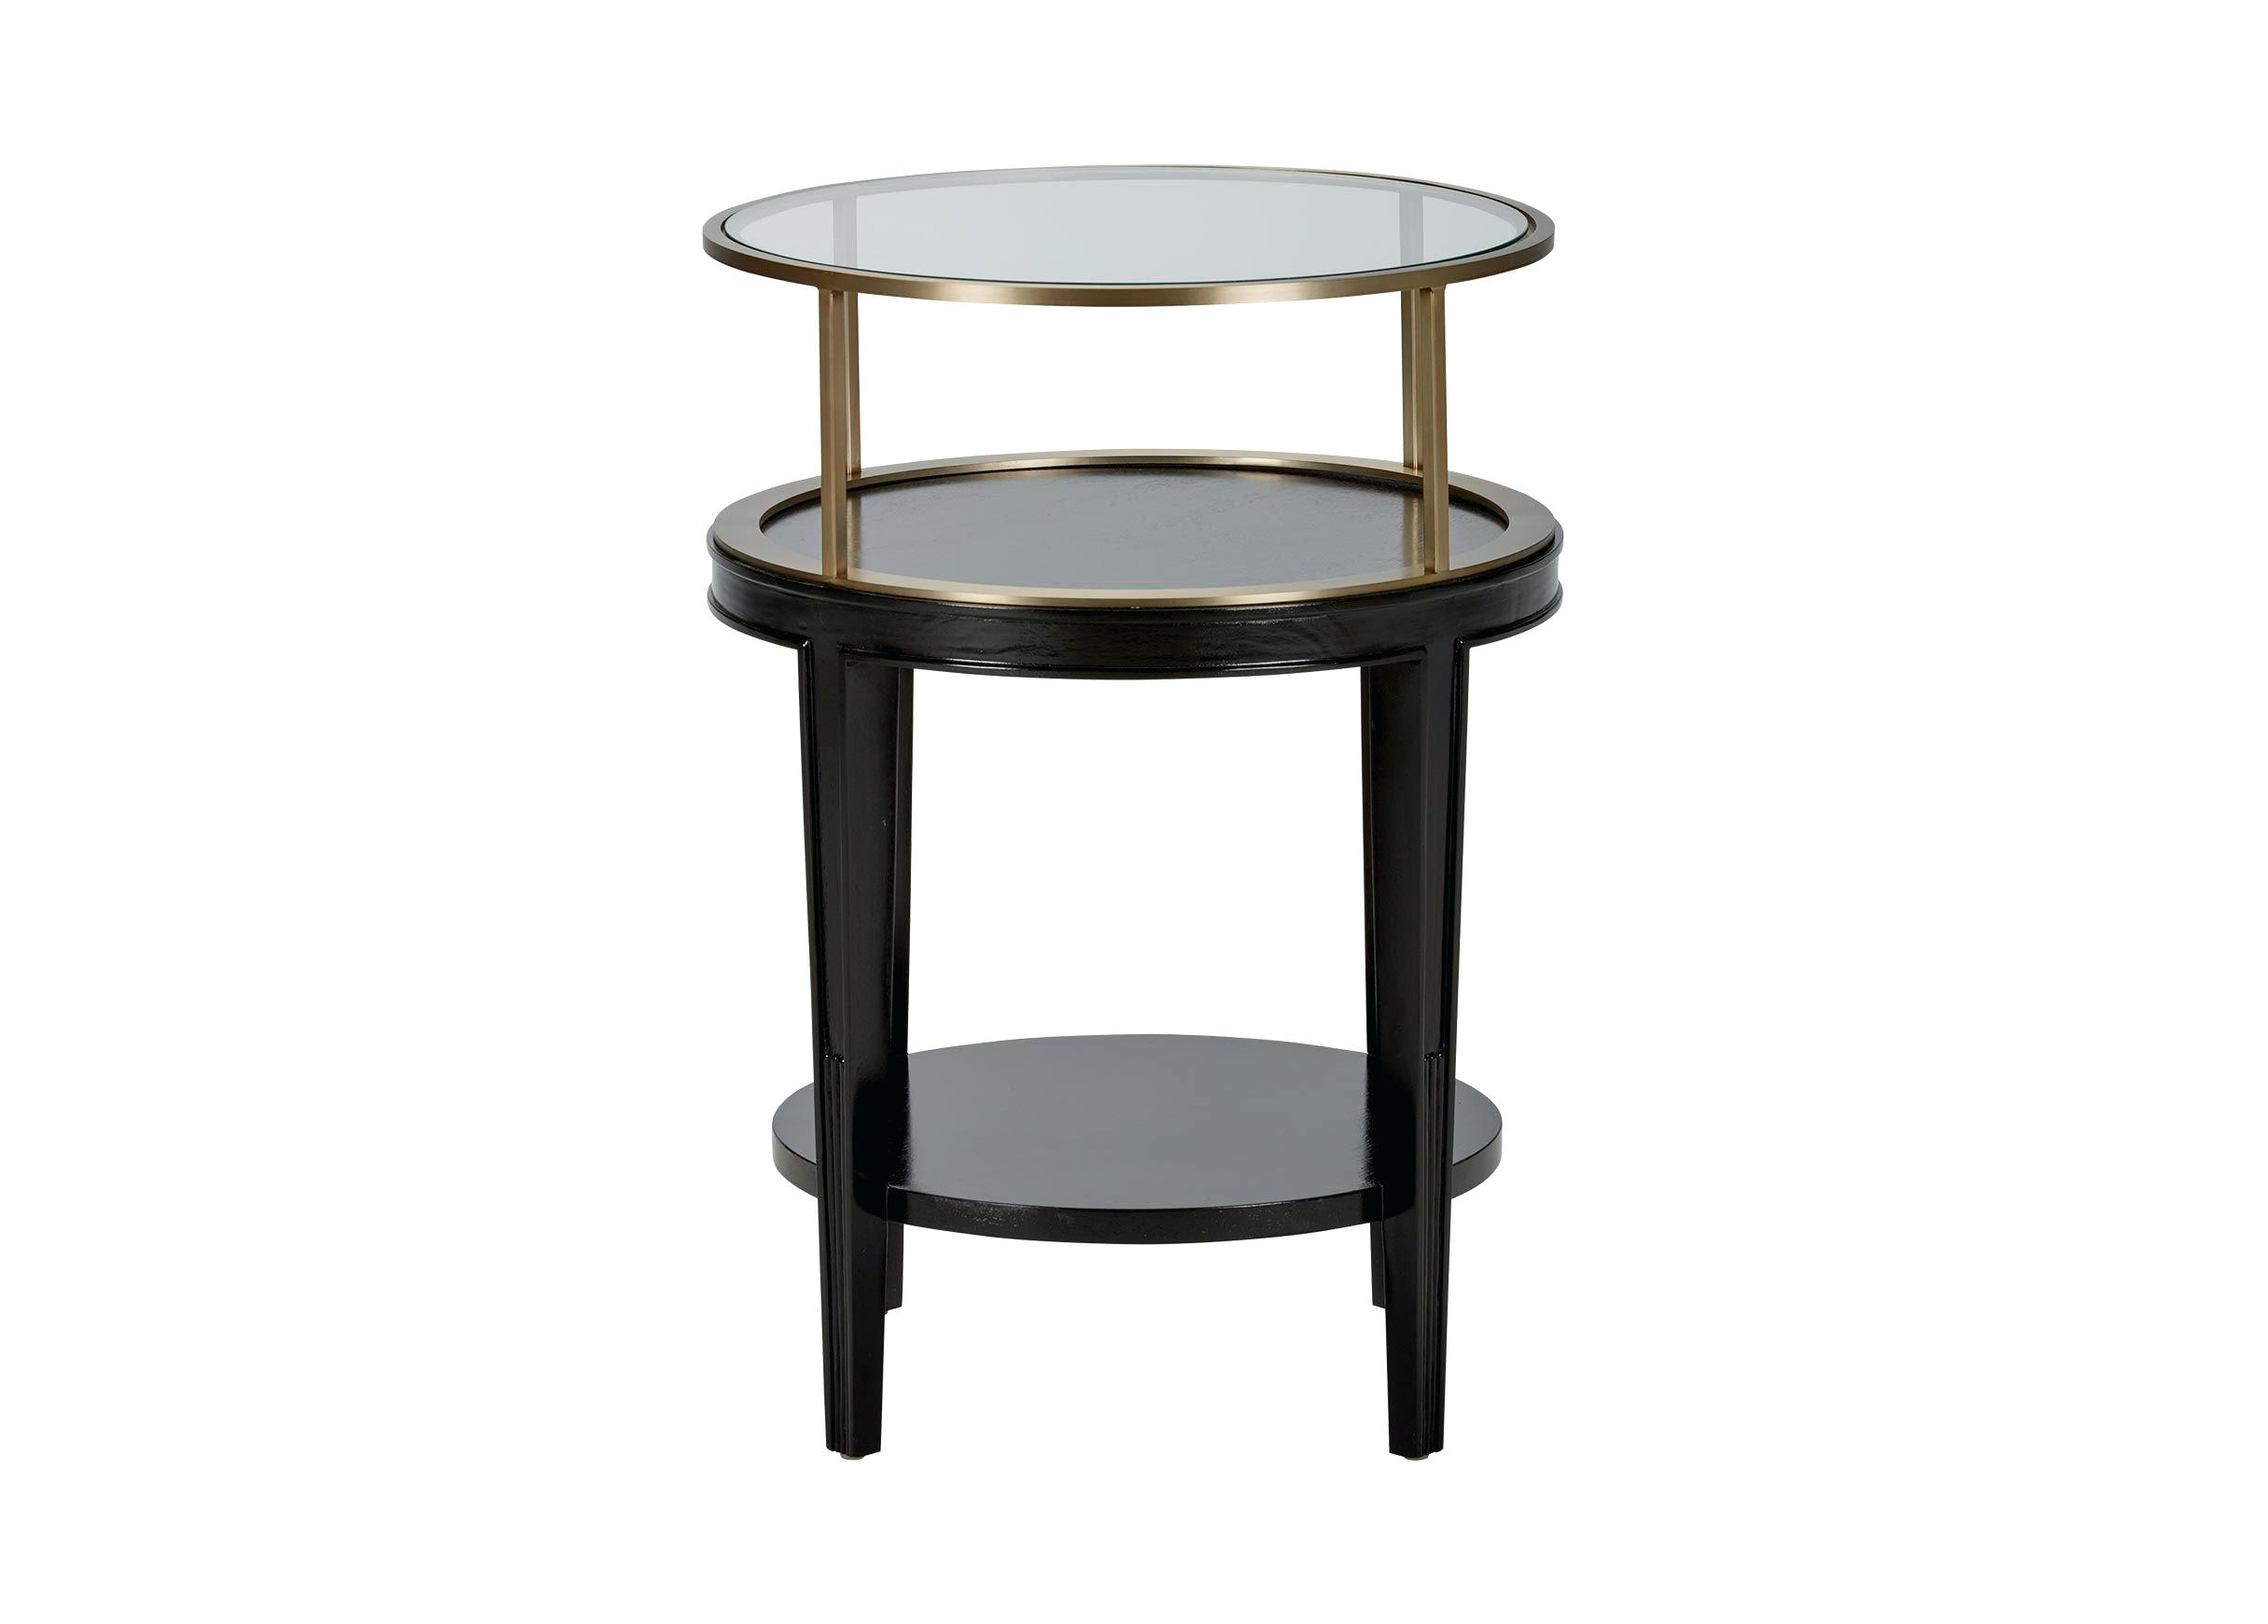 black accent tables for antique natural modena table with chairs winsome daniel drawer finish metal and wood round kitchen gorgeous tall full size commercial room essentials